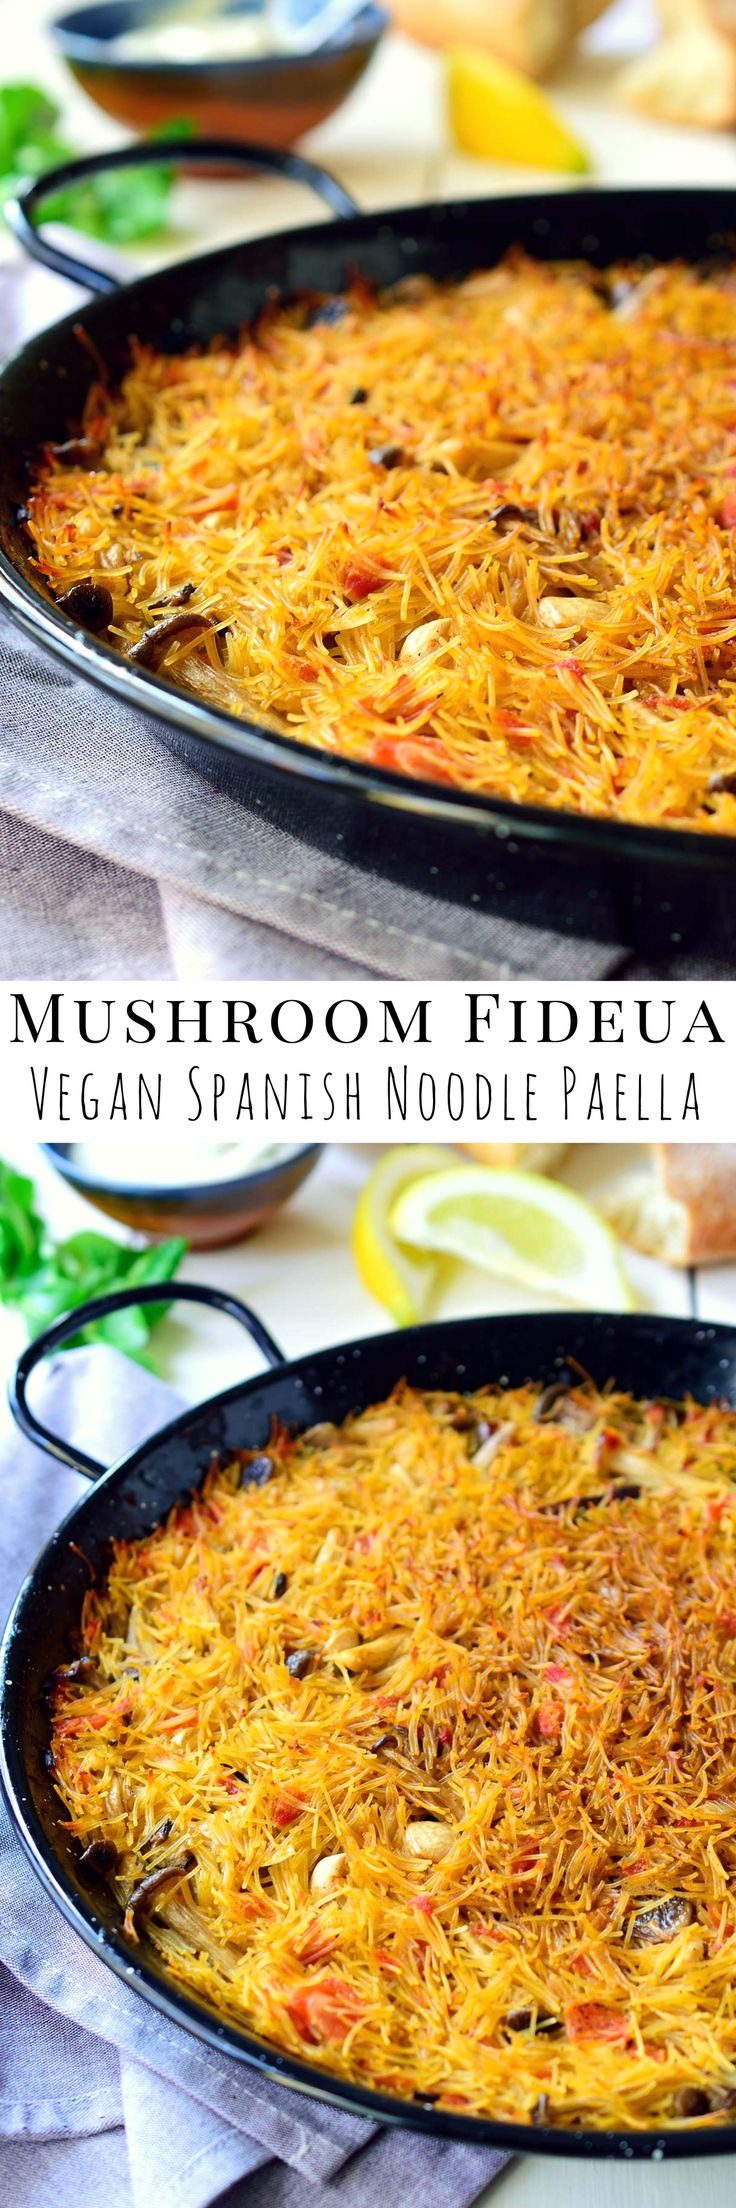 If you like vegan paella then you need to try this mushroom fideuà. Short angel-hair-like noodles replace the rice in this recipe to make a sort of Spanish noodle paella. Typically made with seafood, my vegetarian fideuà uses a variety of mushrooms for a totally plant-based version of this traditional Spanish dish.